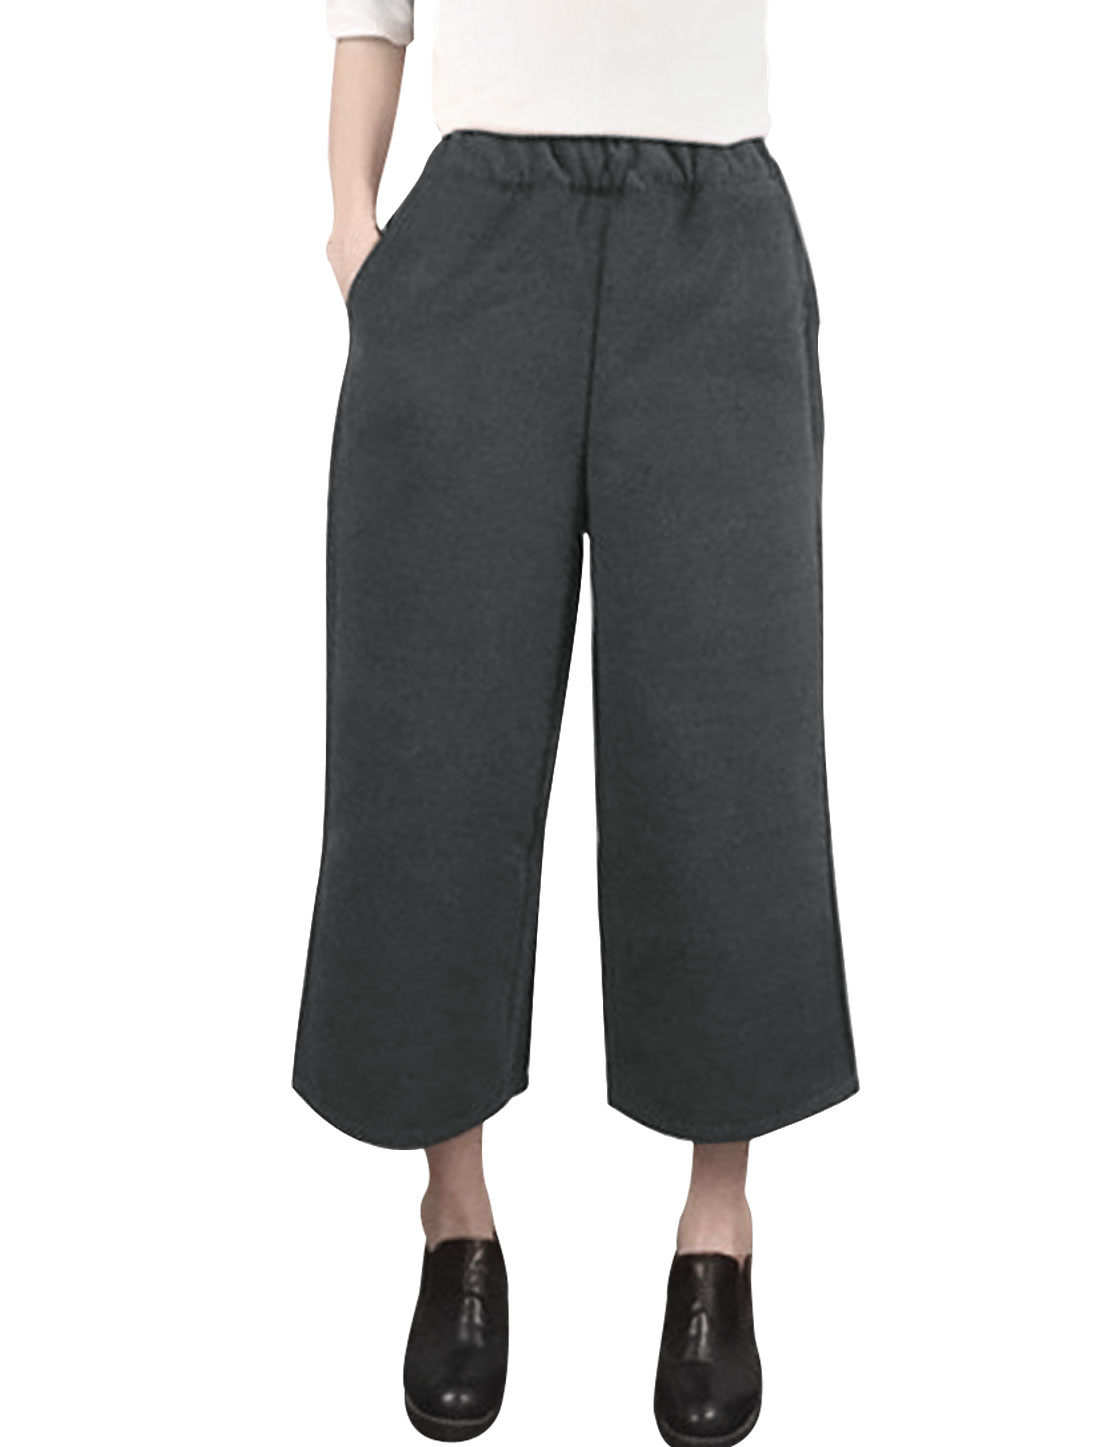 Women High Waist Wide Legs Worsted Cropped Pants Gray XS